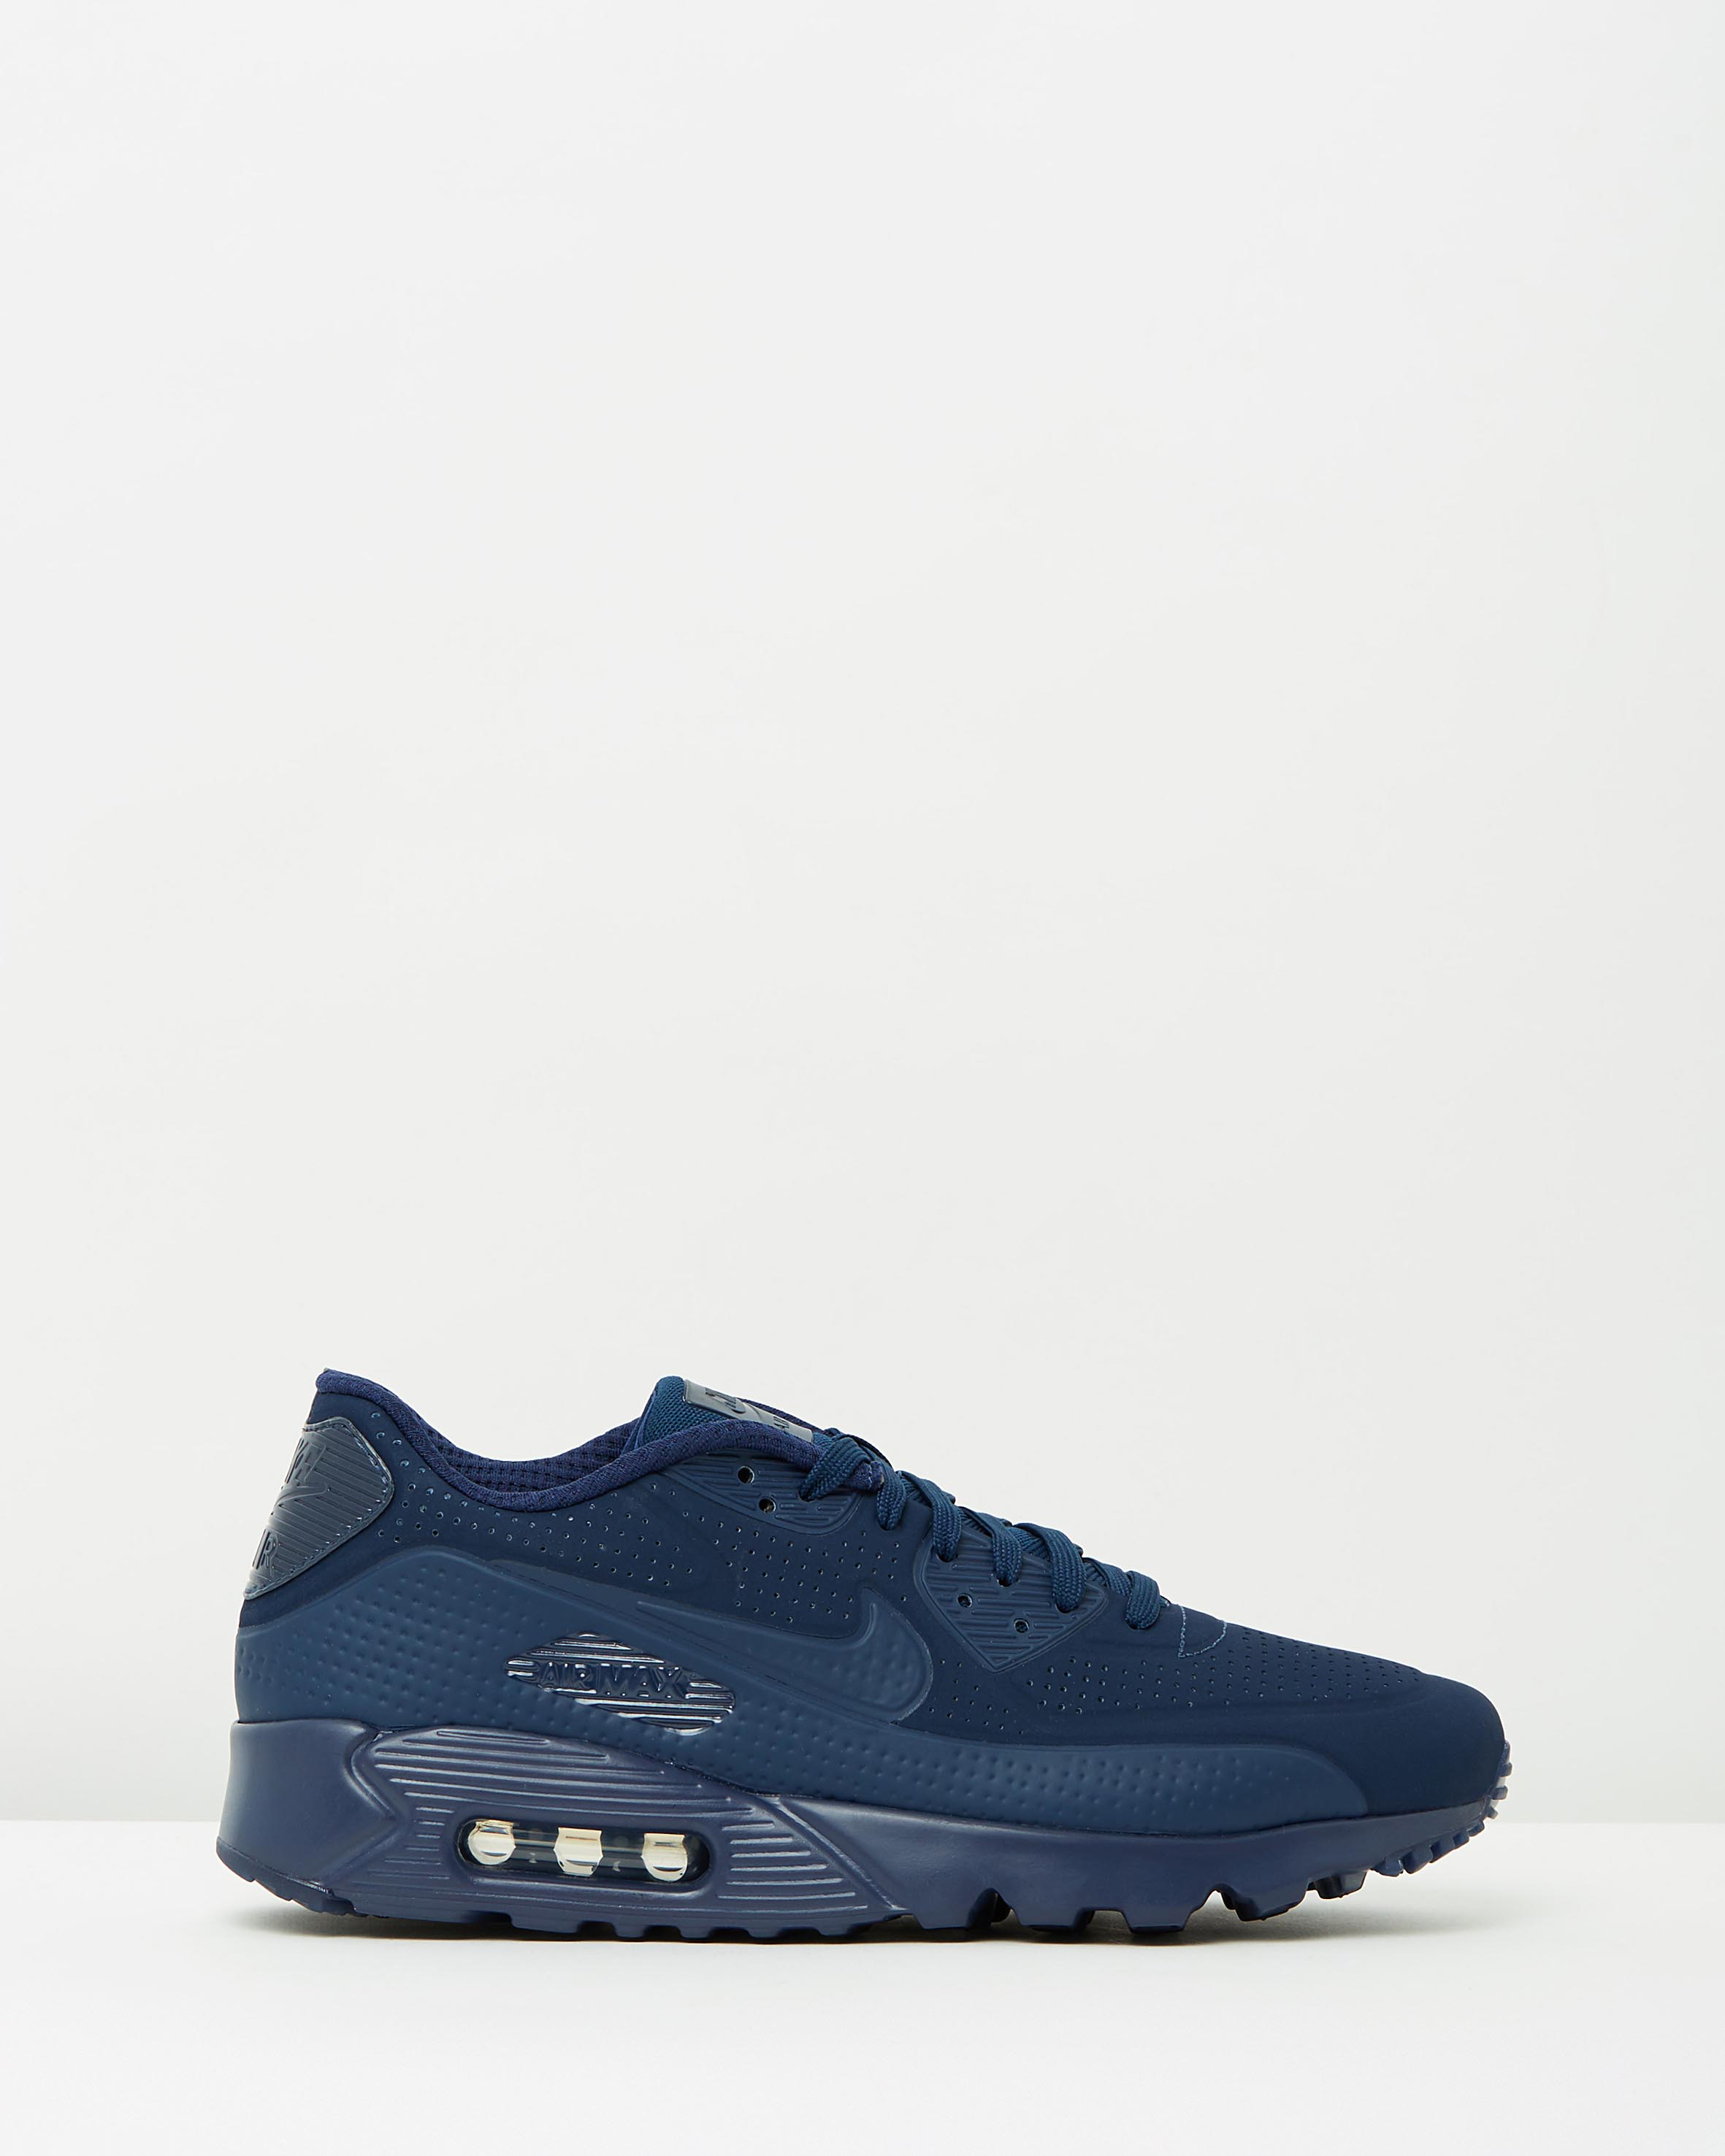 quality design 2b979 5fc79 Nike Air Max 90 Ultra Moire Midnight Blue 1 ...